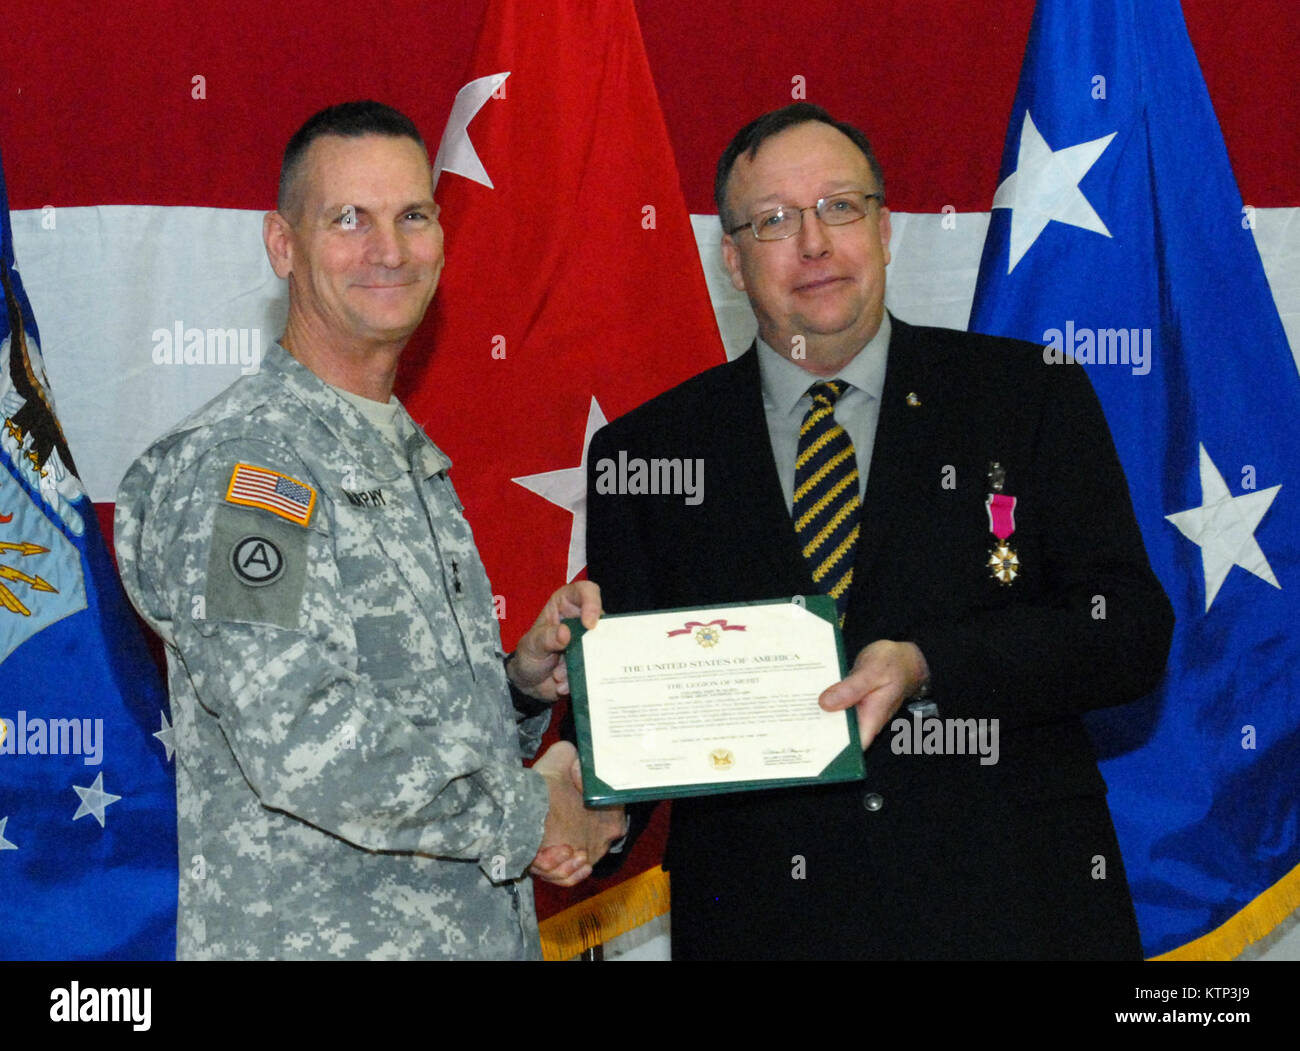 LATHAM , NY - Maj. Gen. Patrick Murphy, The Adjutant General of New York State (left), poses with Col. (ret) Eric Stock Photo